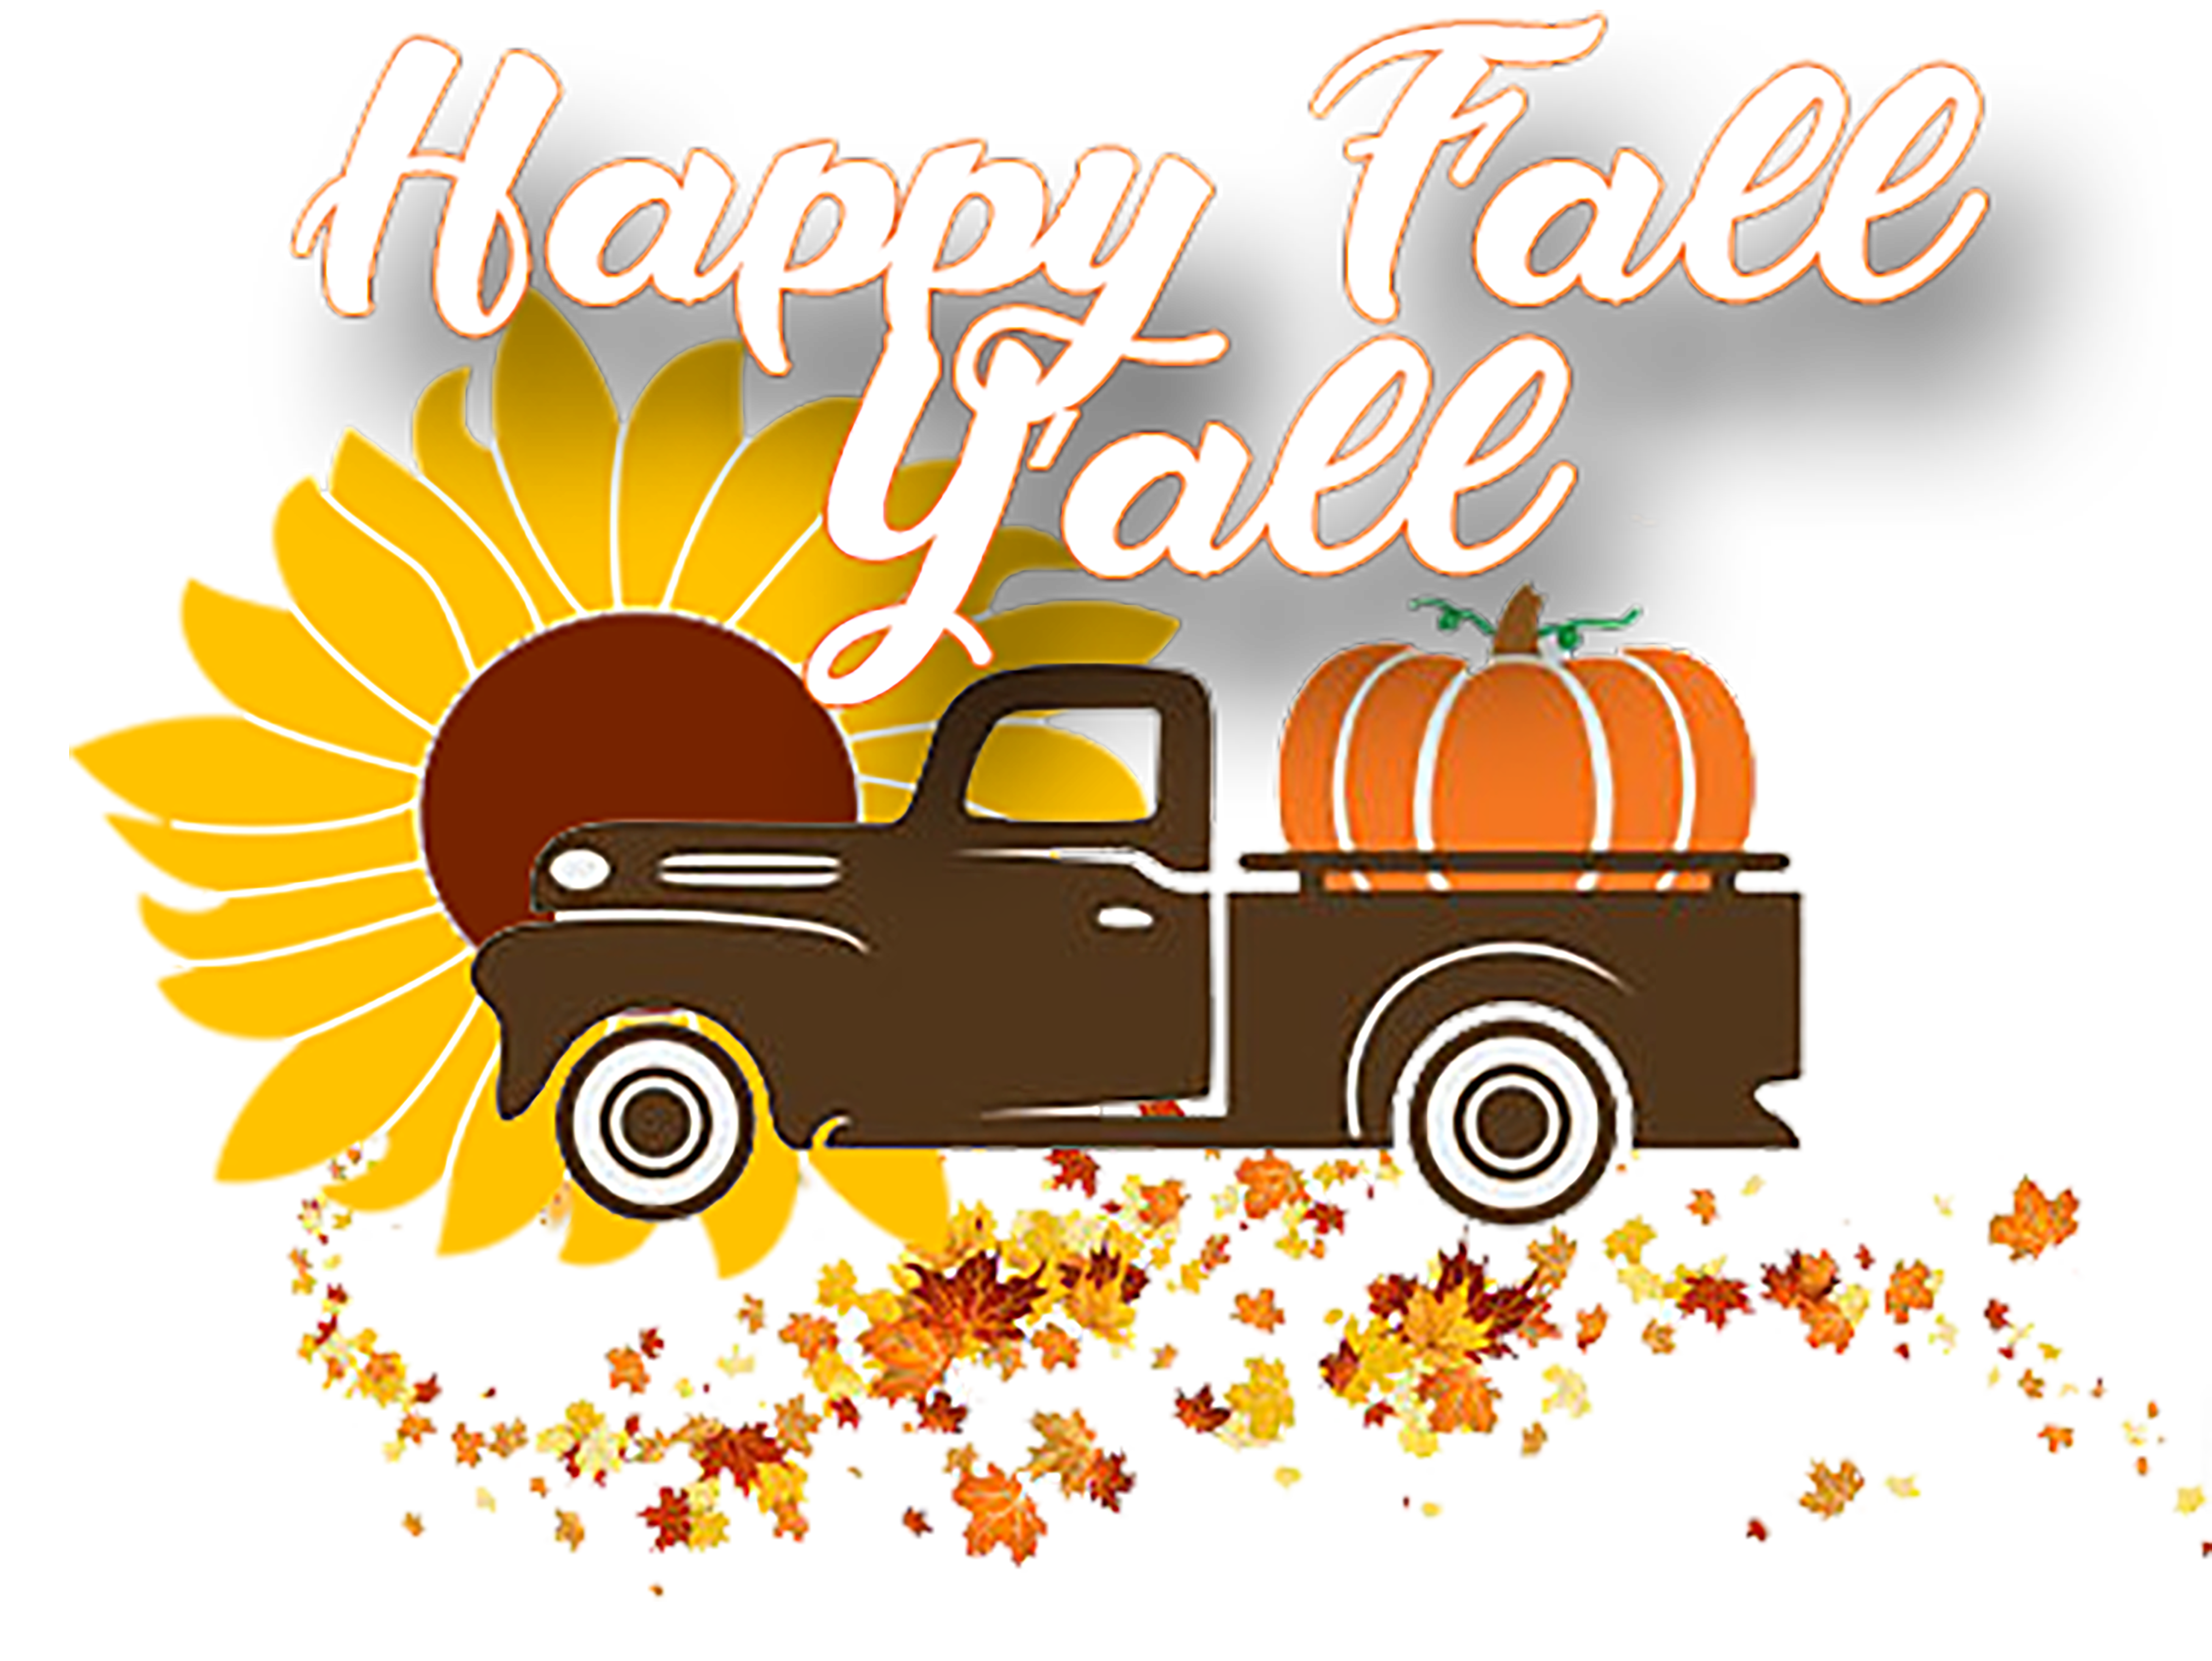 Happy fall yall clipart clip black and white Happy fall yall clipart clipart images gallery for free download ... clip black and white